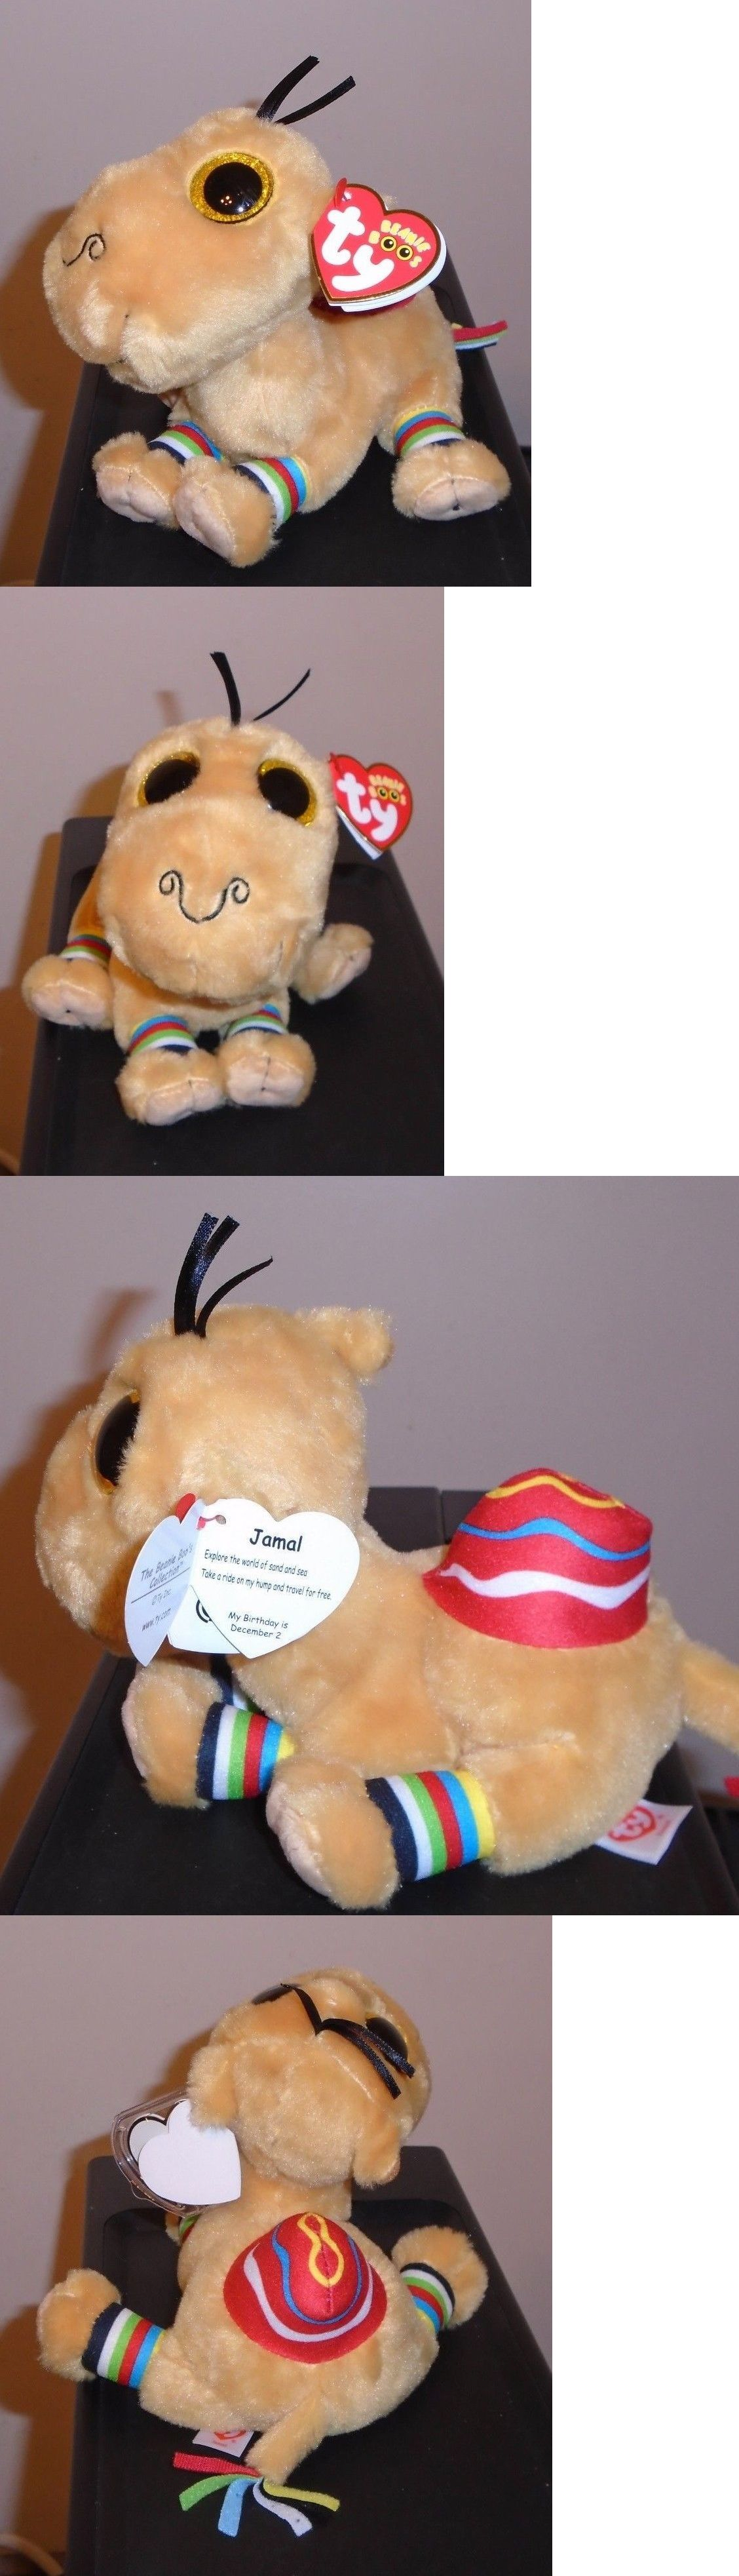 821134270f4 Ty 19203  Nm  Ty Beanie Boos - Jamal The Camel (6 Inch)(Uae Exclusive) New  Nmwmt -  BUY IT NOW ONLY   26.9 on  eBay  beanie  jamal  camel  nmwmt